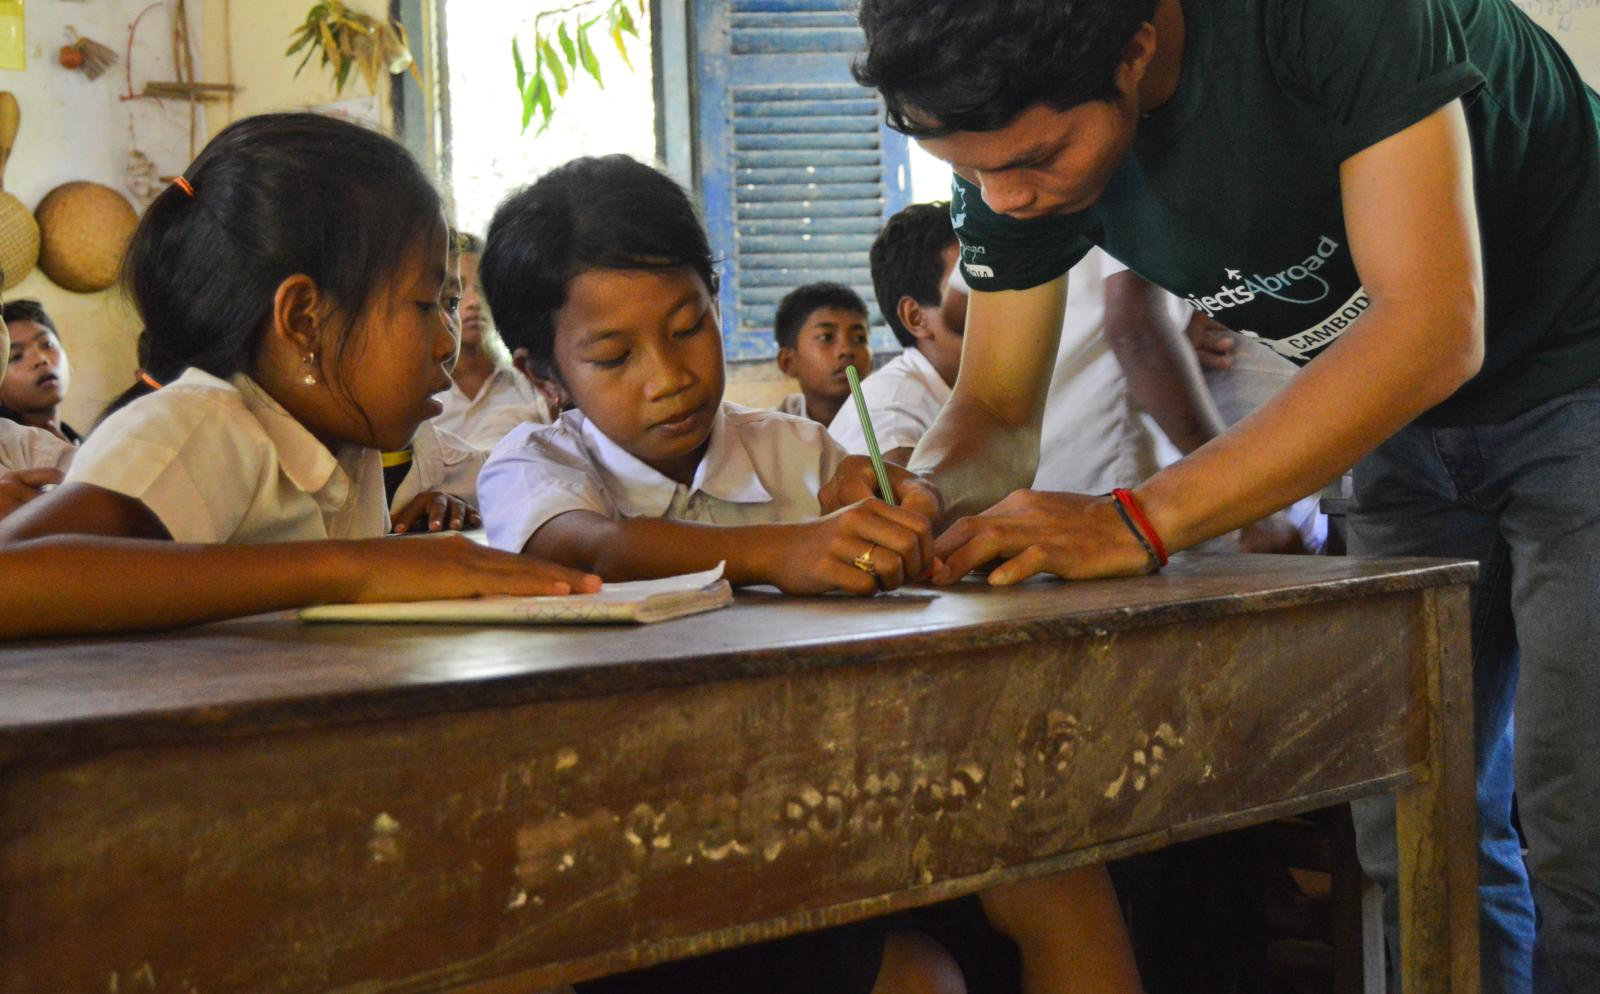 An international volunteer helps Cambodian children with their English homework